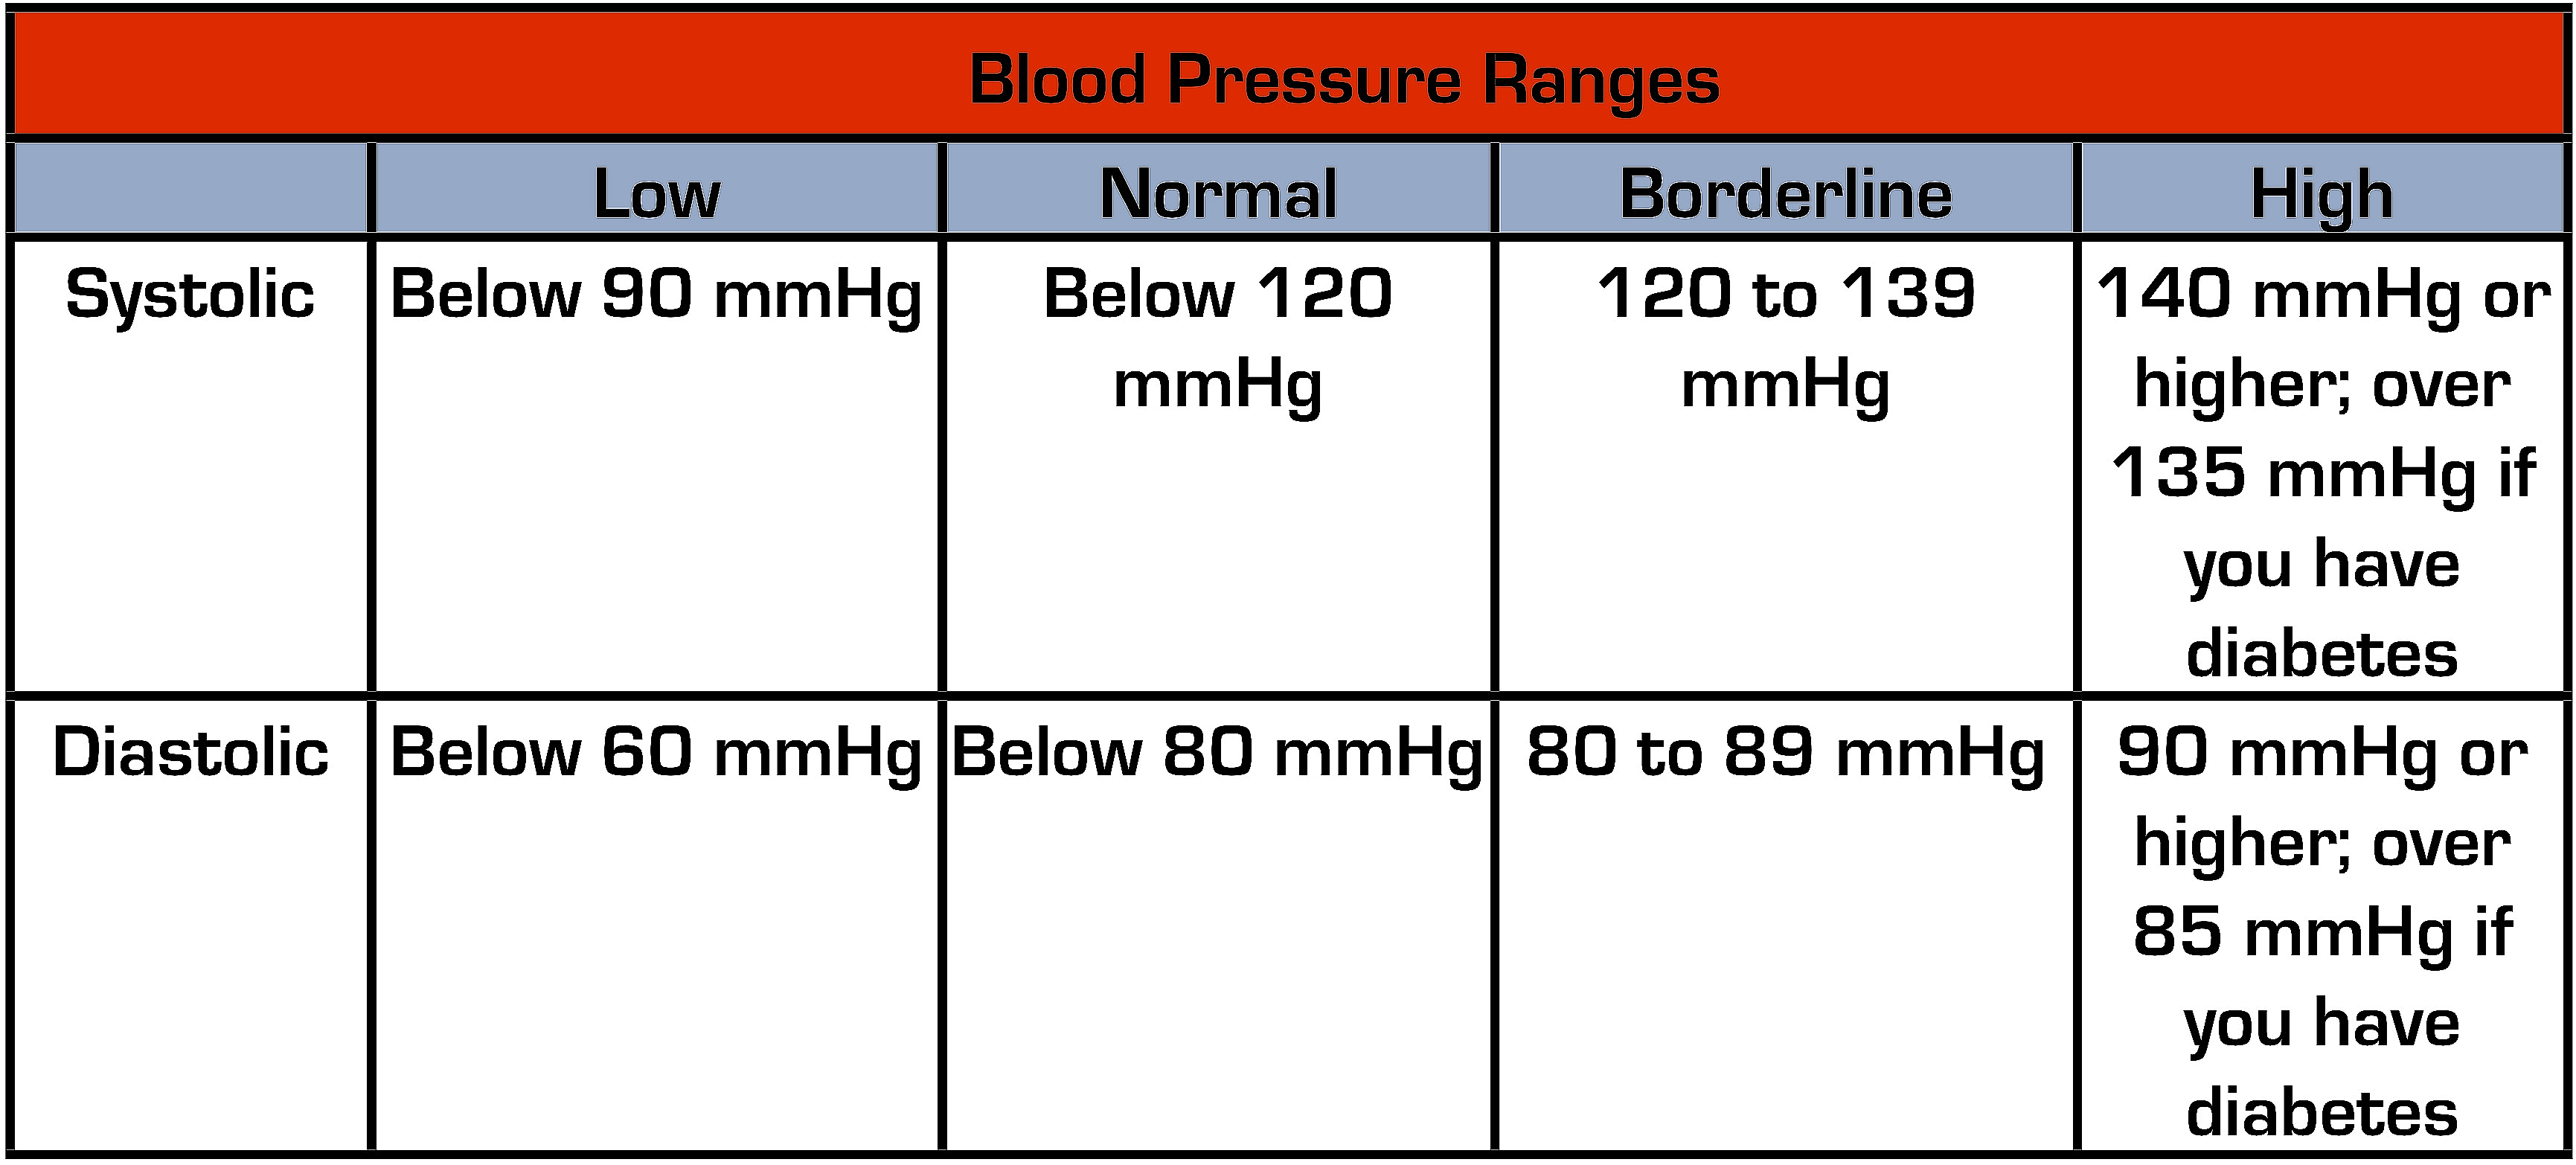 Blood Pressure Ranges